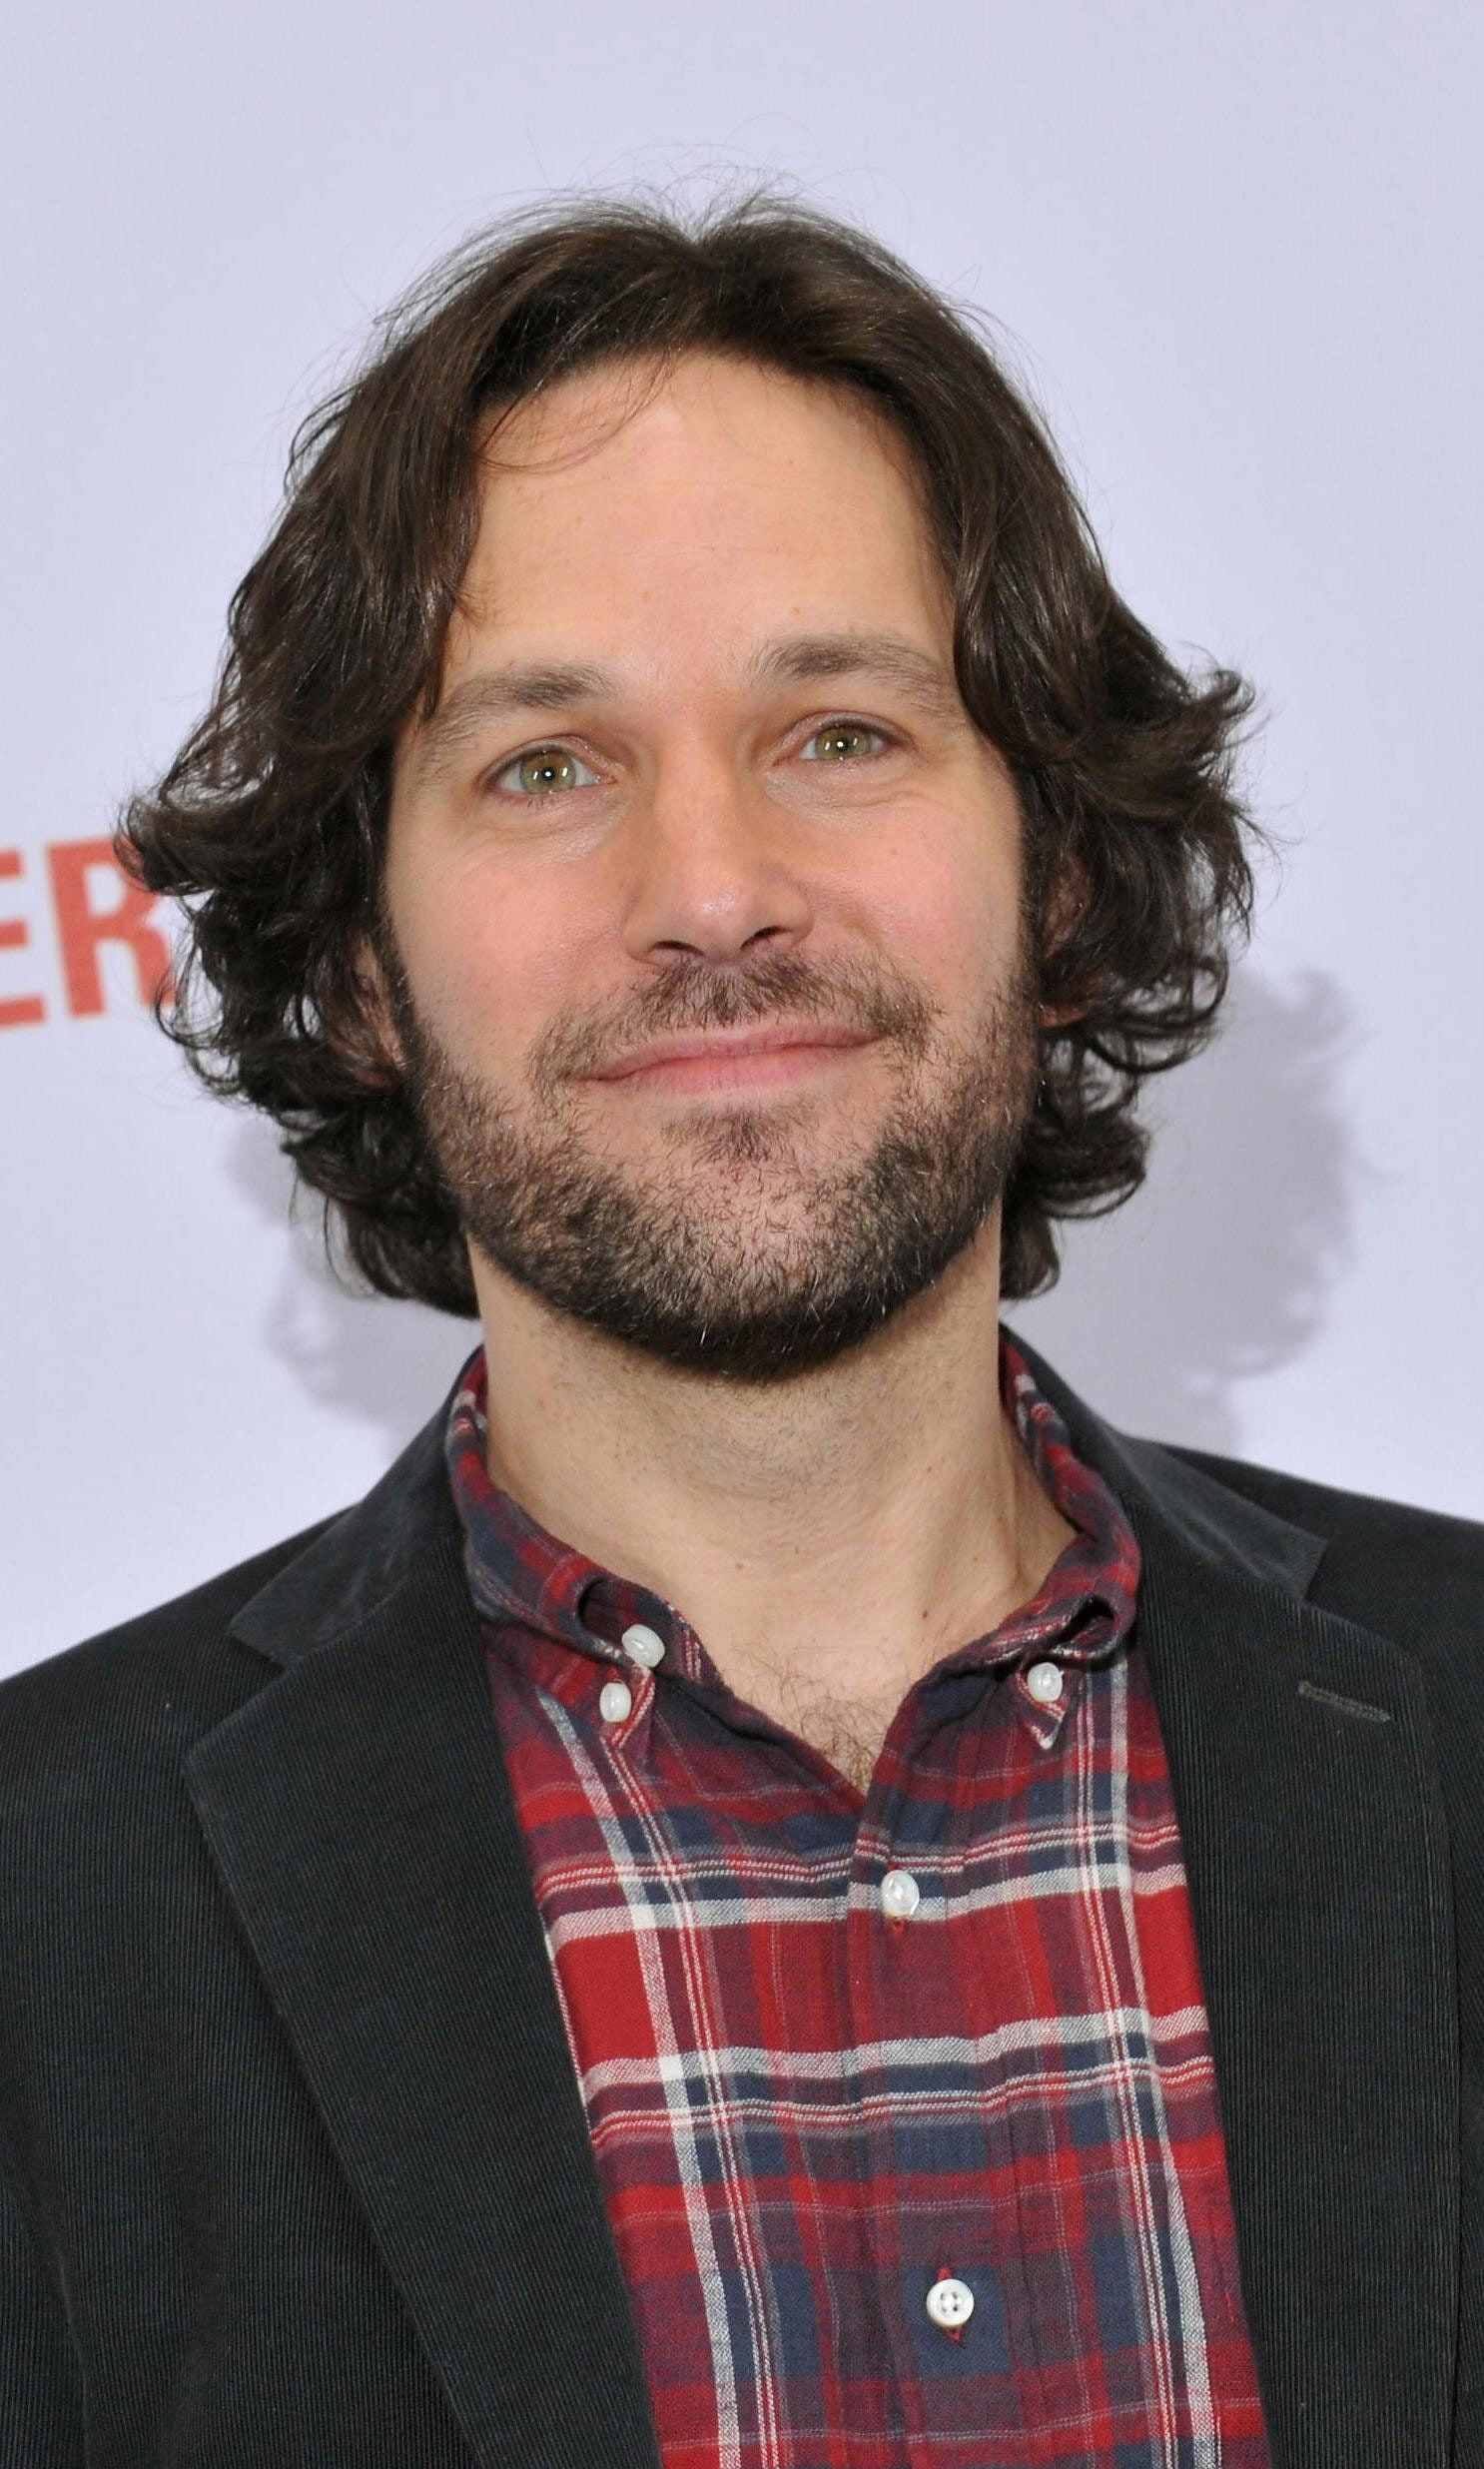 Paul Rudd Full hd wallpapers